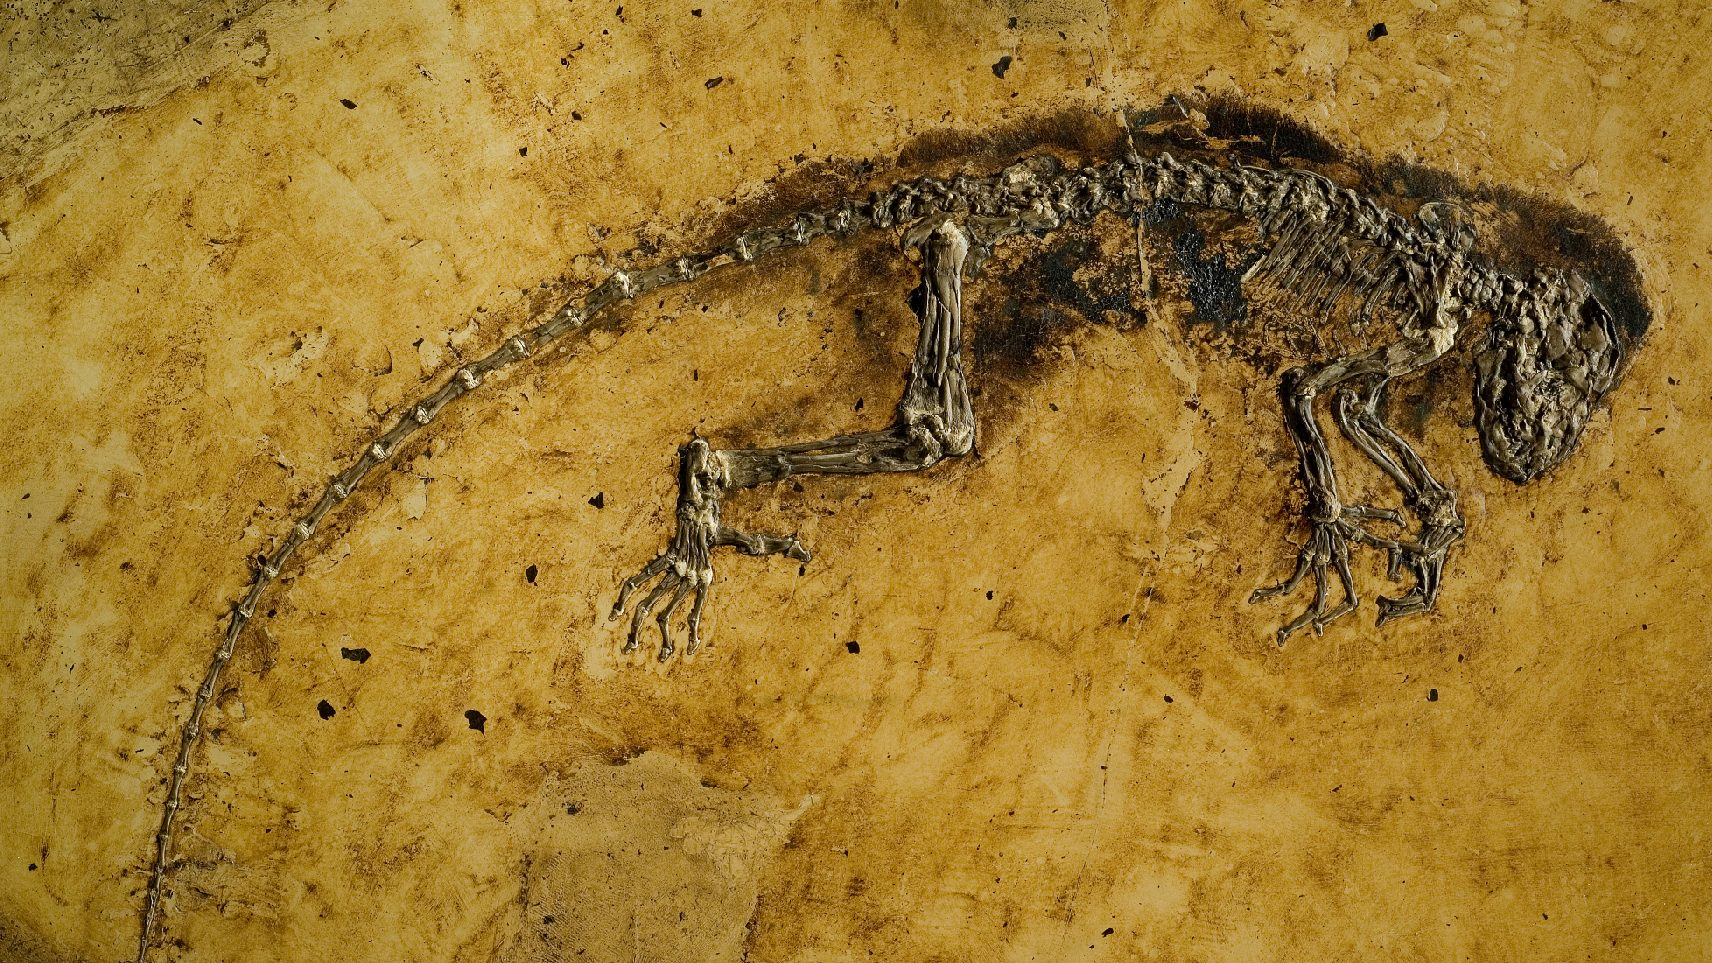 Image: Darwinius Masillae fossil from Messel Germany Fossil Deposit